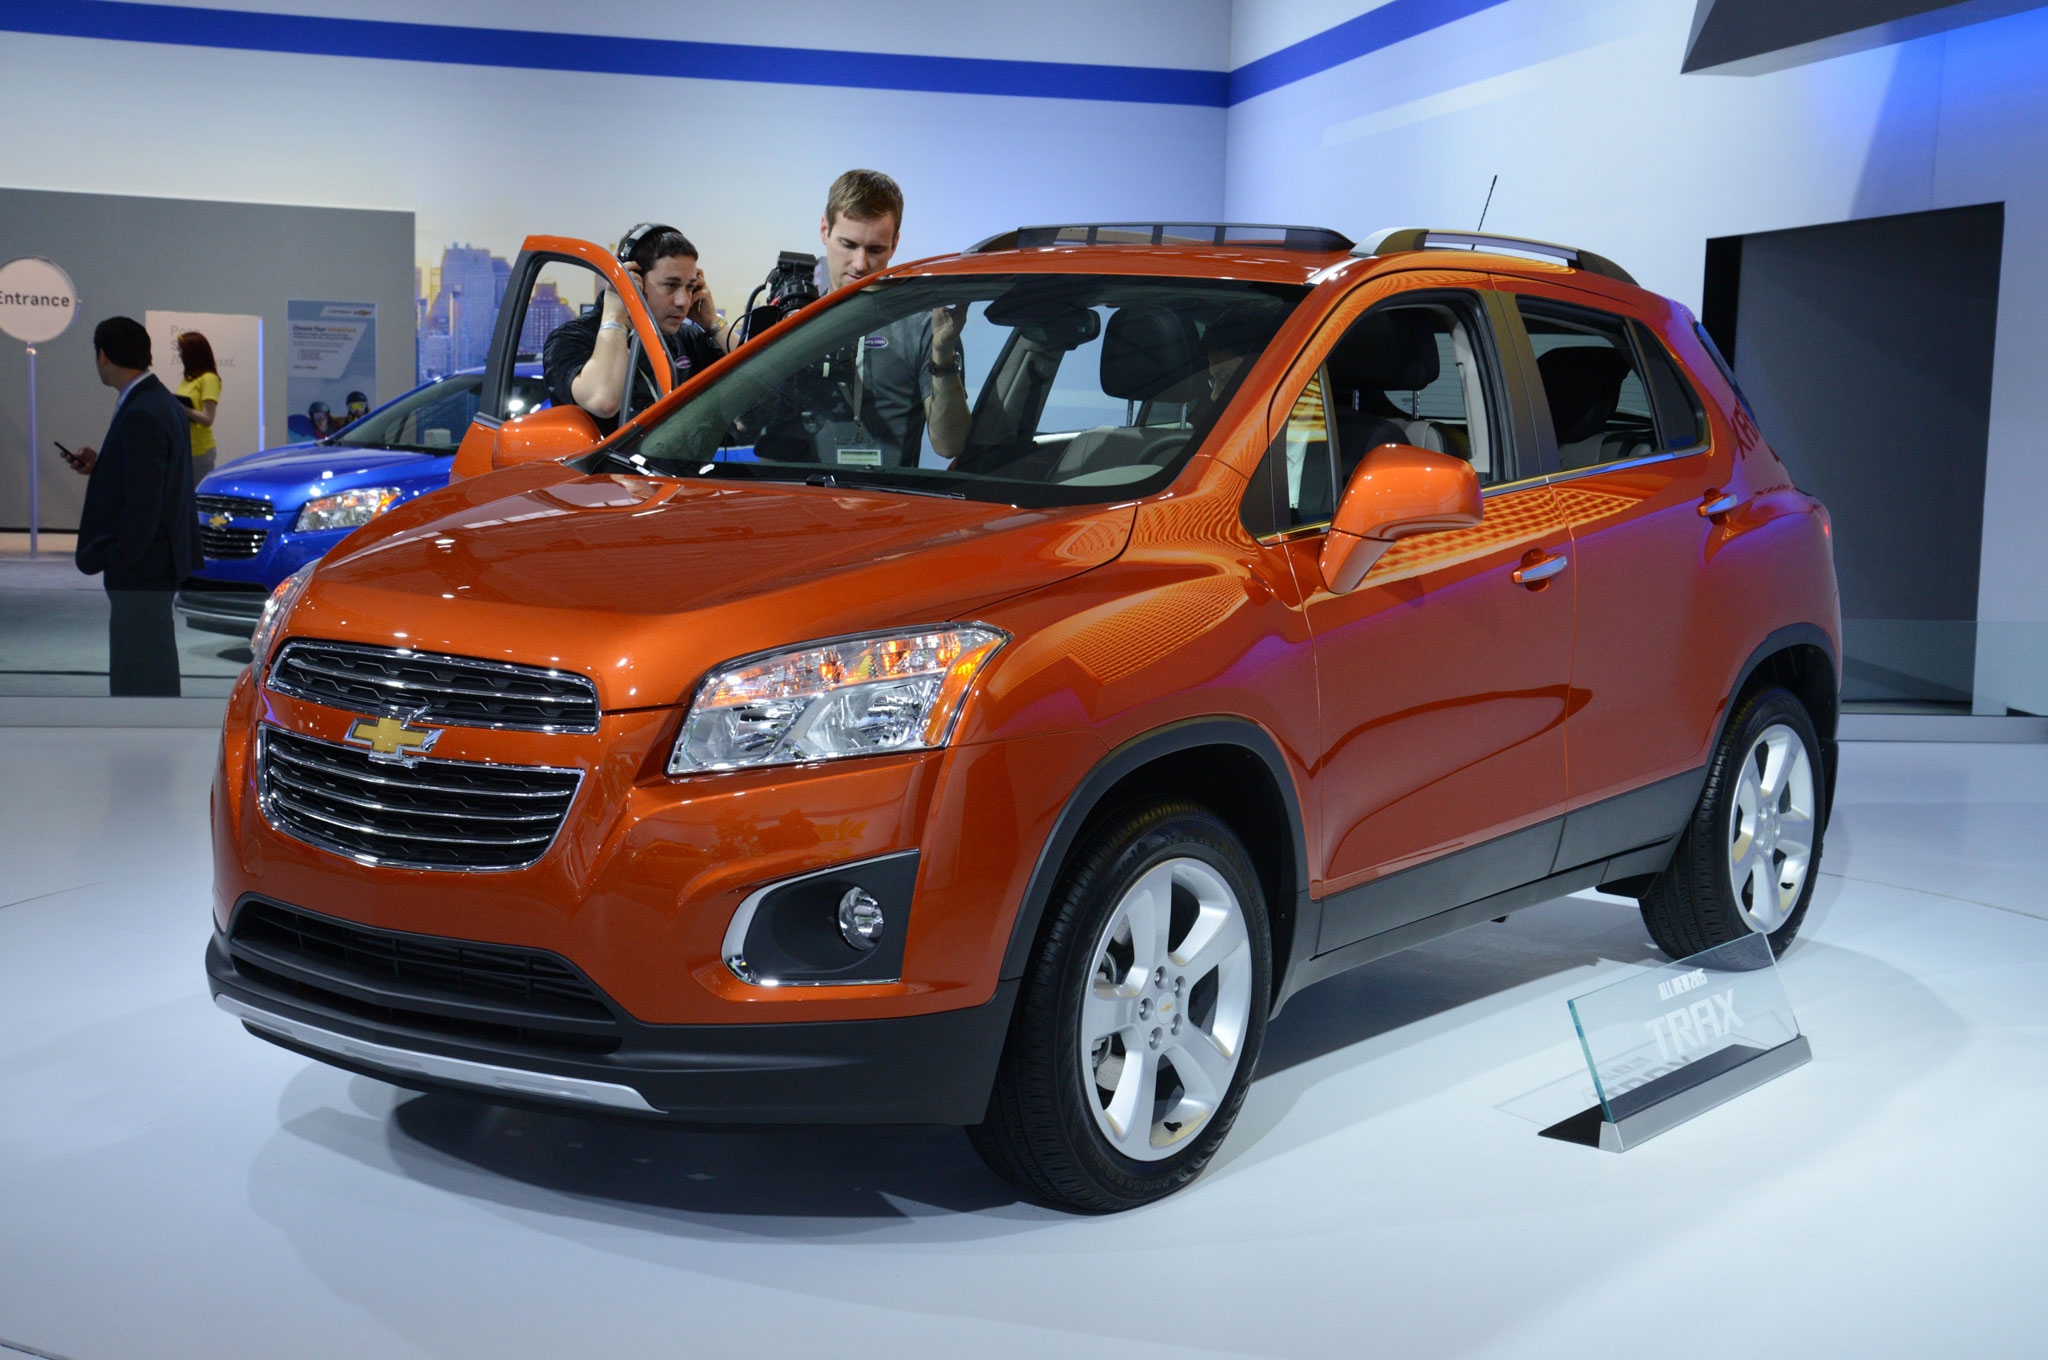 2015 Chevrolet Trax Front Three Quarter View2